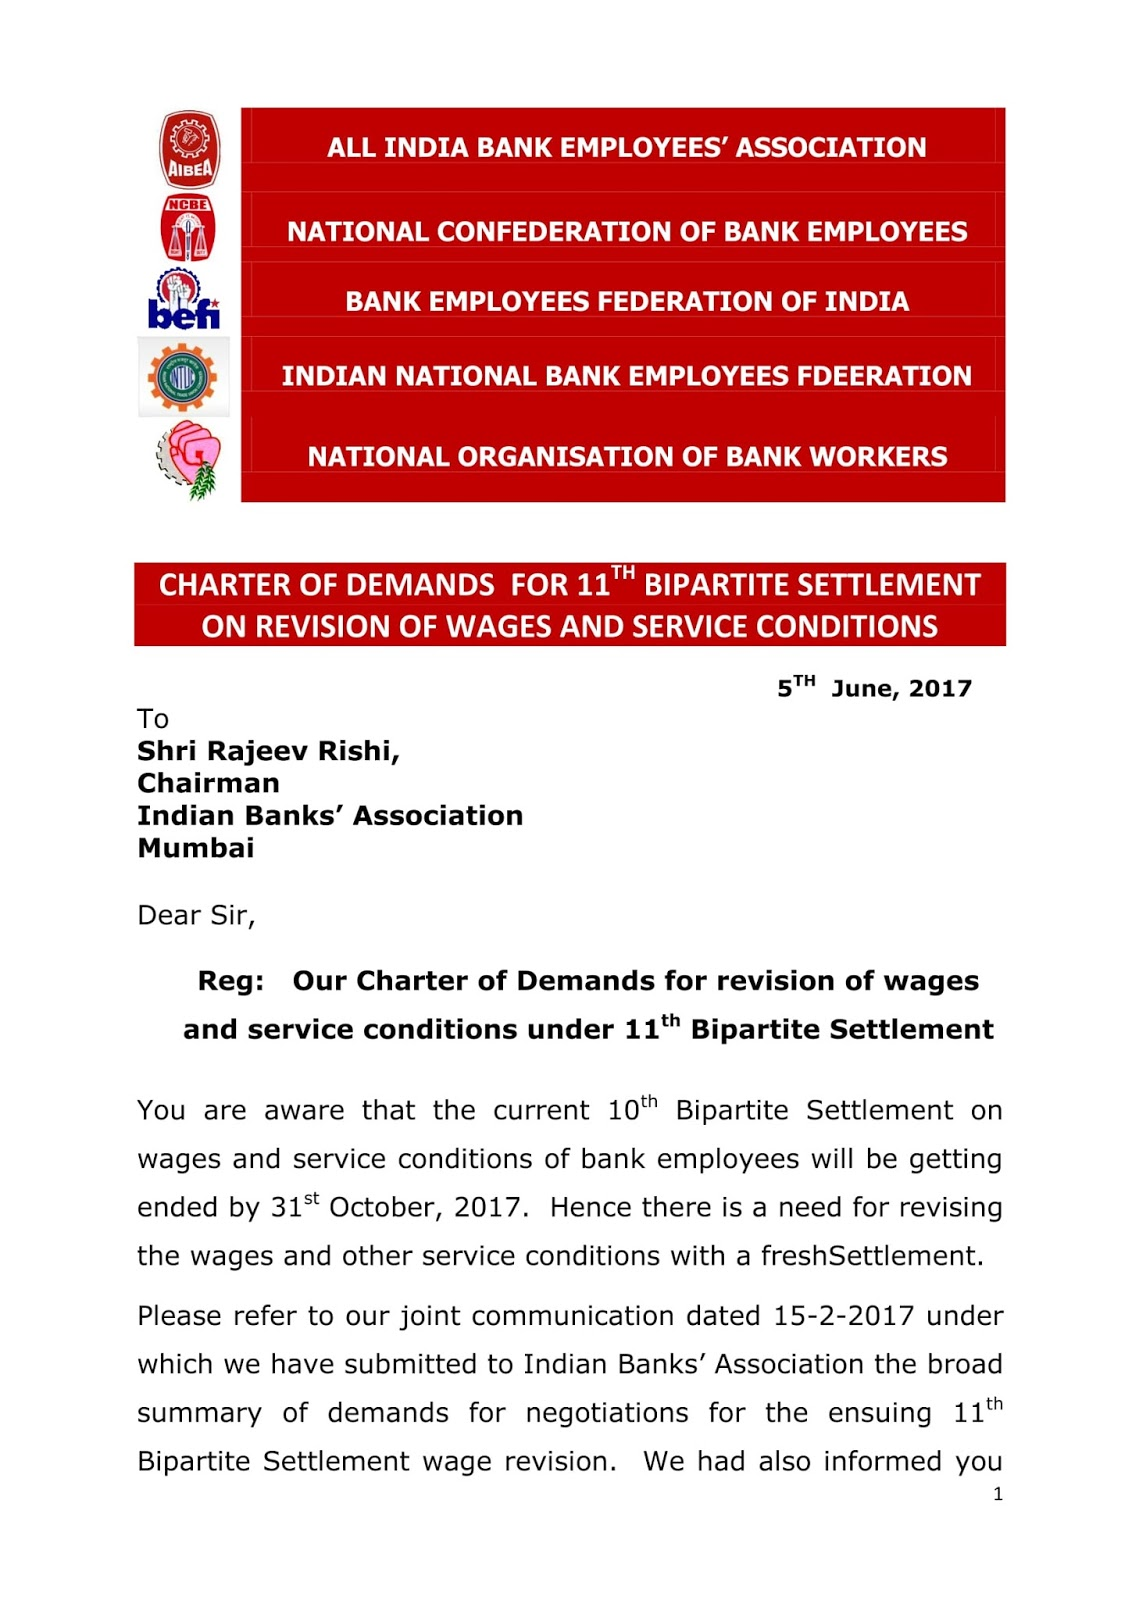 Common Charter of Demands for 11th Bipartite Settlement given to IBA by AIBEA, NCBE, BEFI, INBEF, NOBW